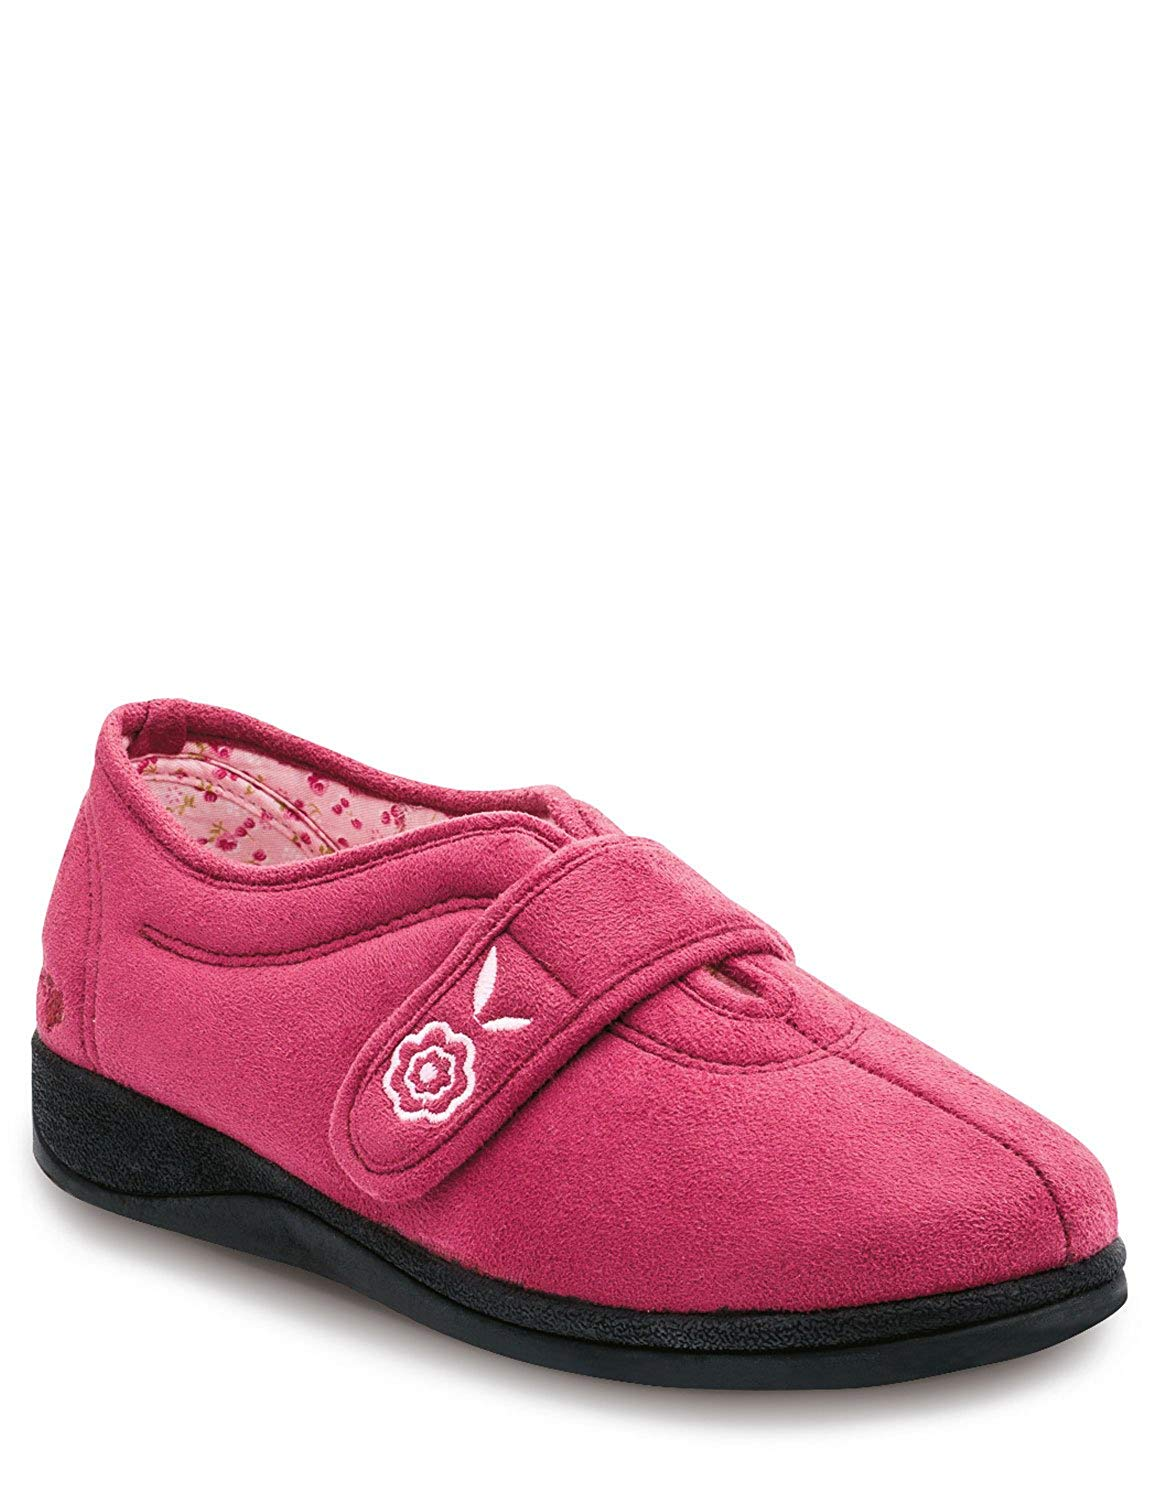 b455b2fc62a Cheap Padders Ladies Shoes, find Padders Ladies Shoes deals on line ...